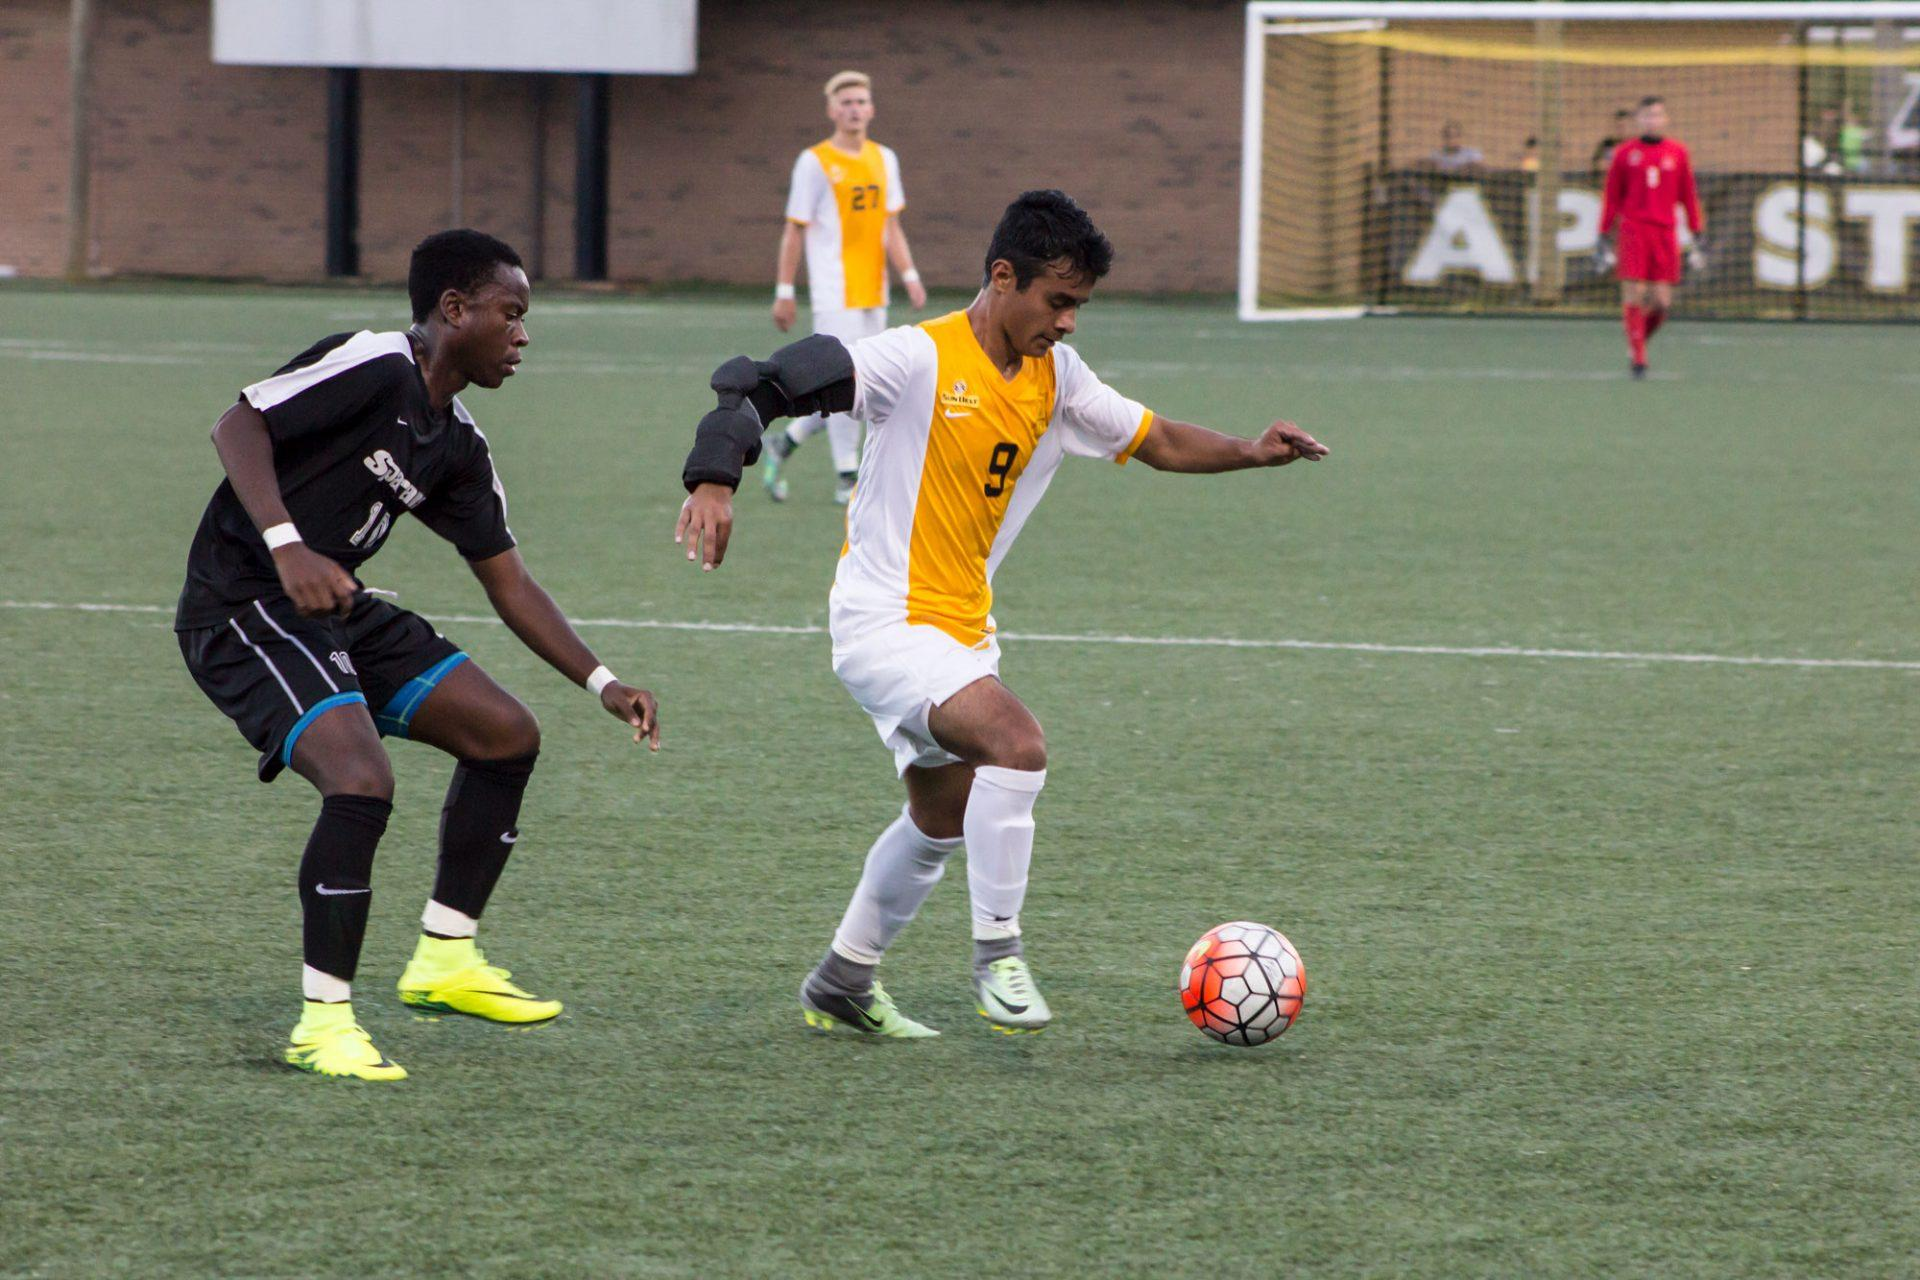 Junior Daniel Avila, kicks the ball while on offense during a 2016 season game against USC. The Mountaineers won with the final score being 3-1.